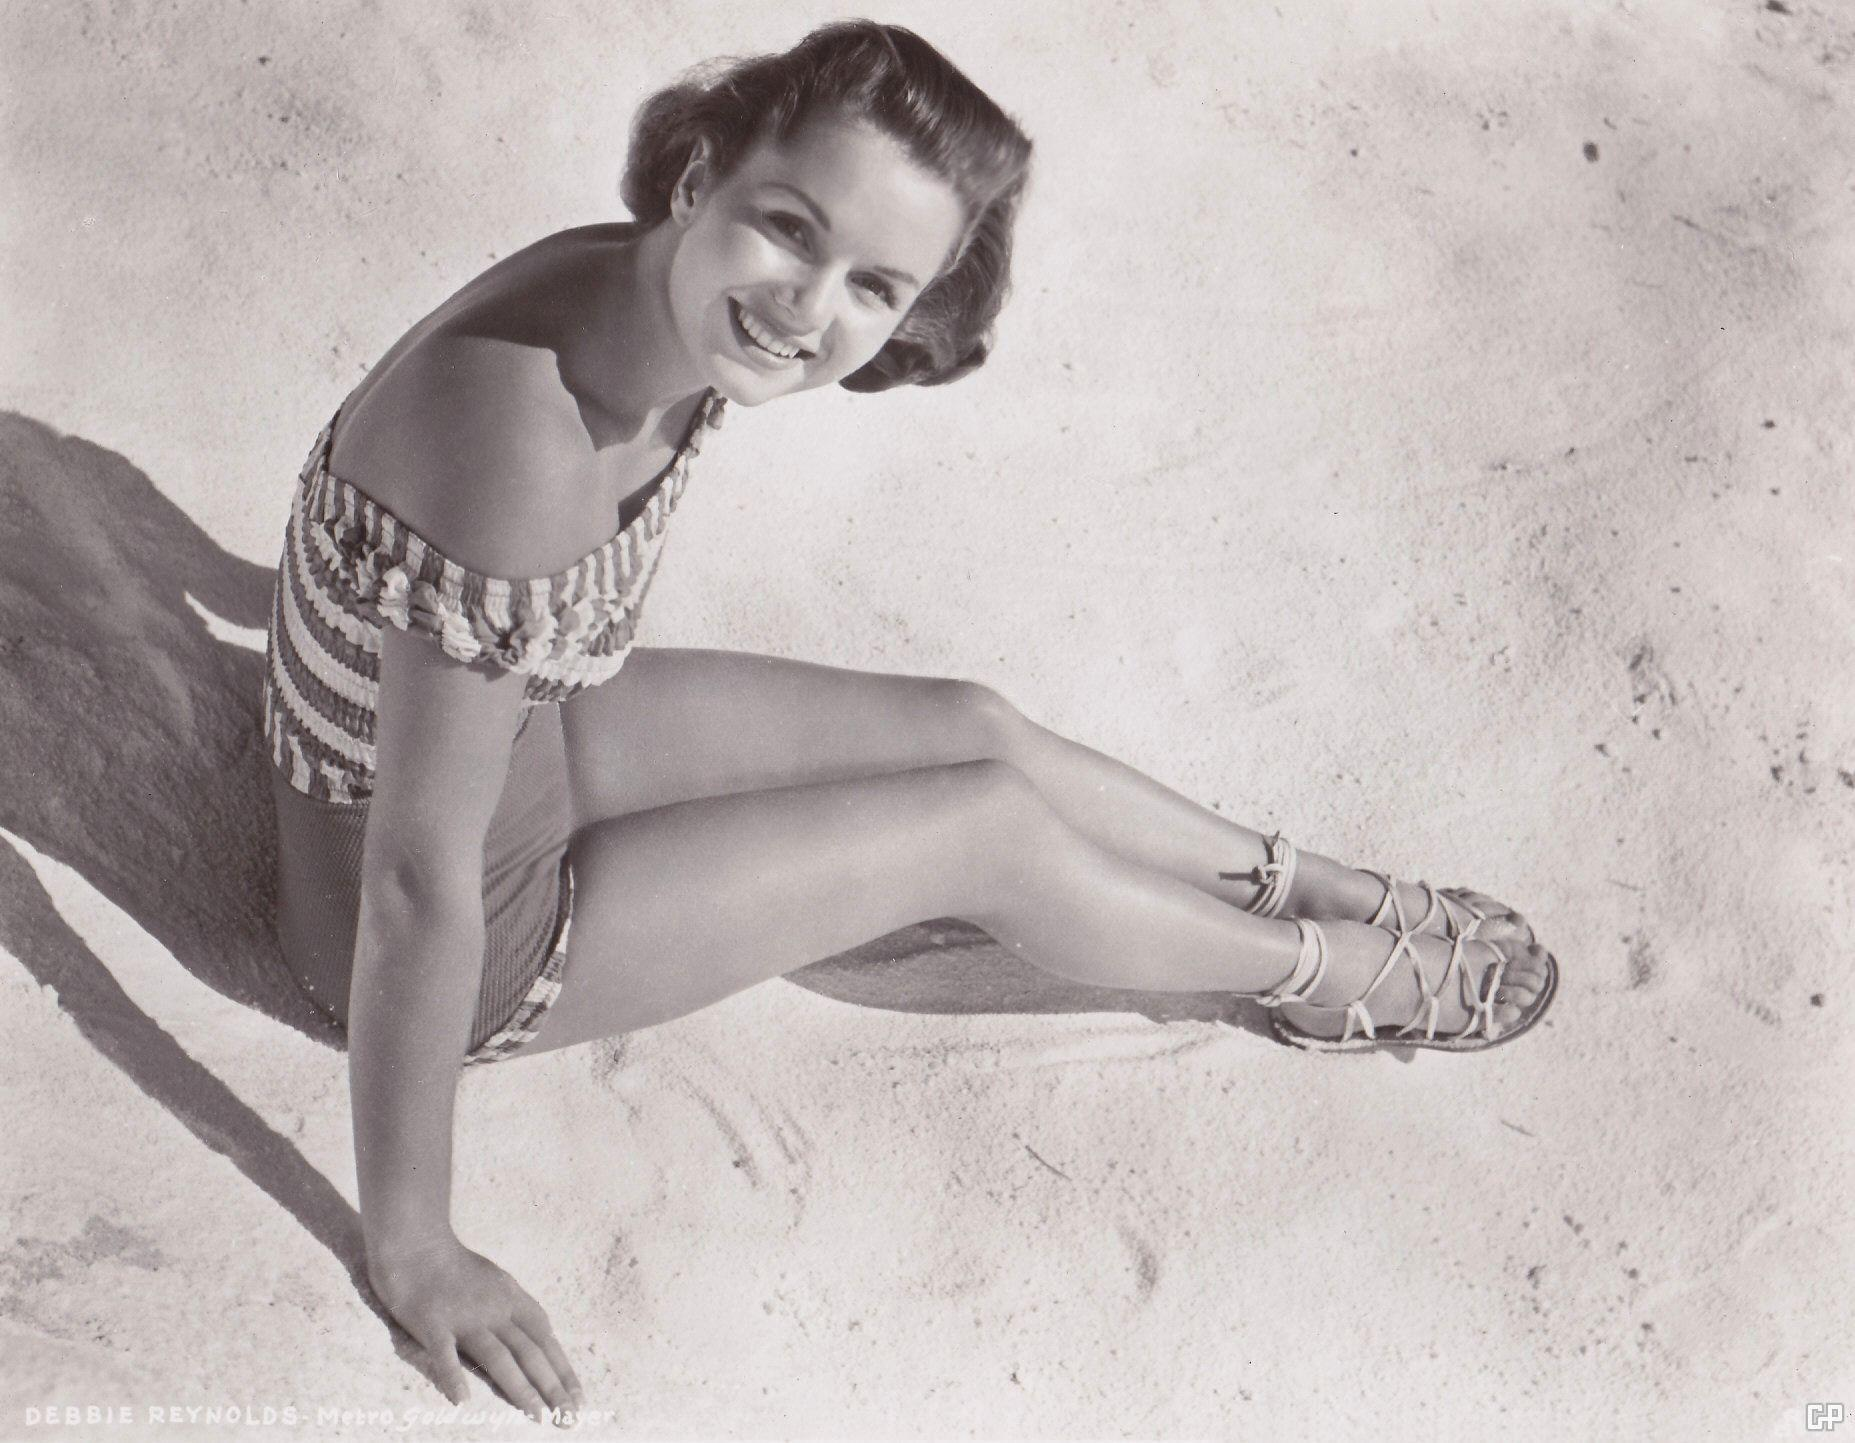 Debbie Reynolds photo 20 of 46 pics, wallpaper - photo #423457 ...